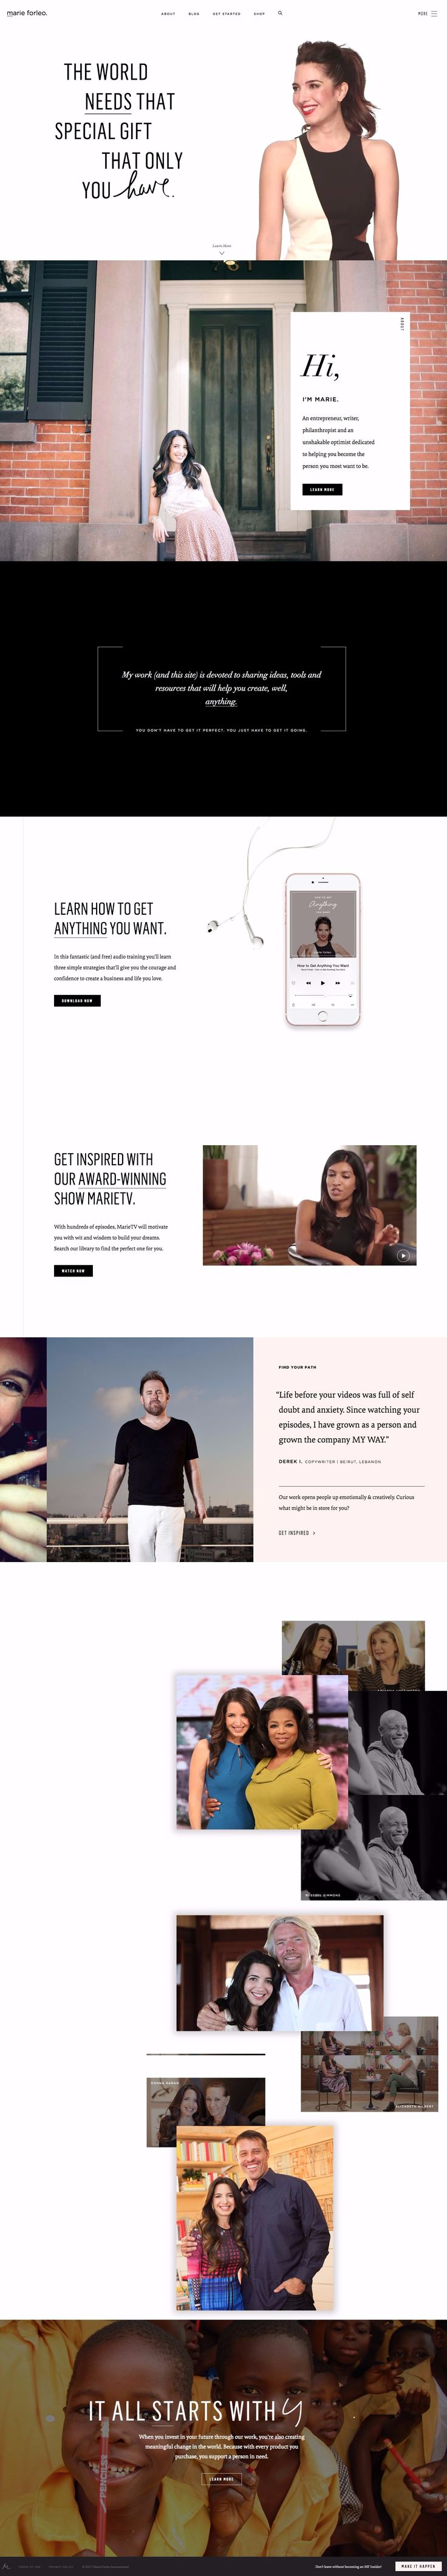 This website is upbeat, clean, and light. The animations are interesting and appropriate for the design. #white #black #photography